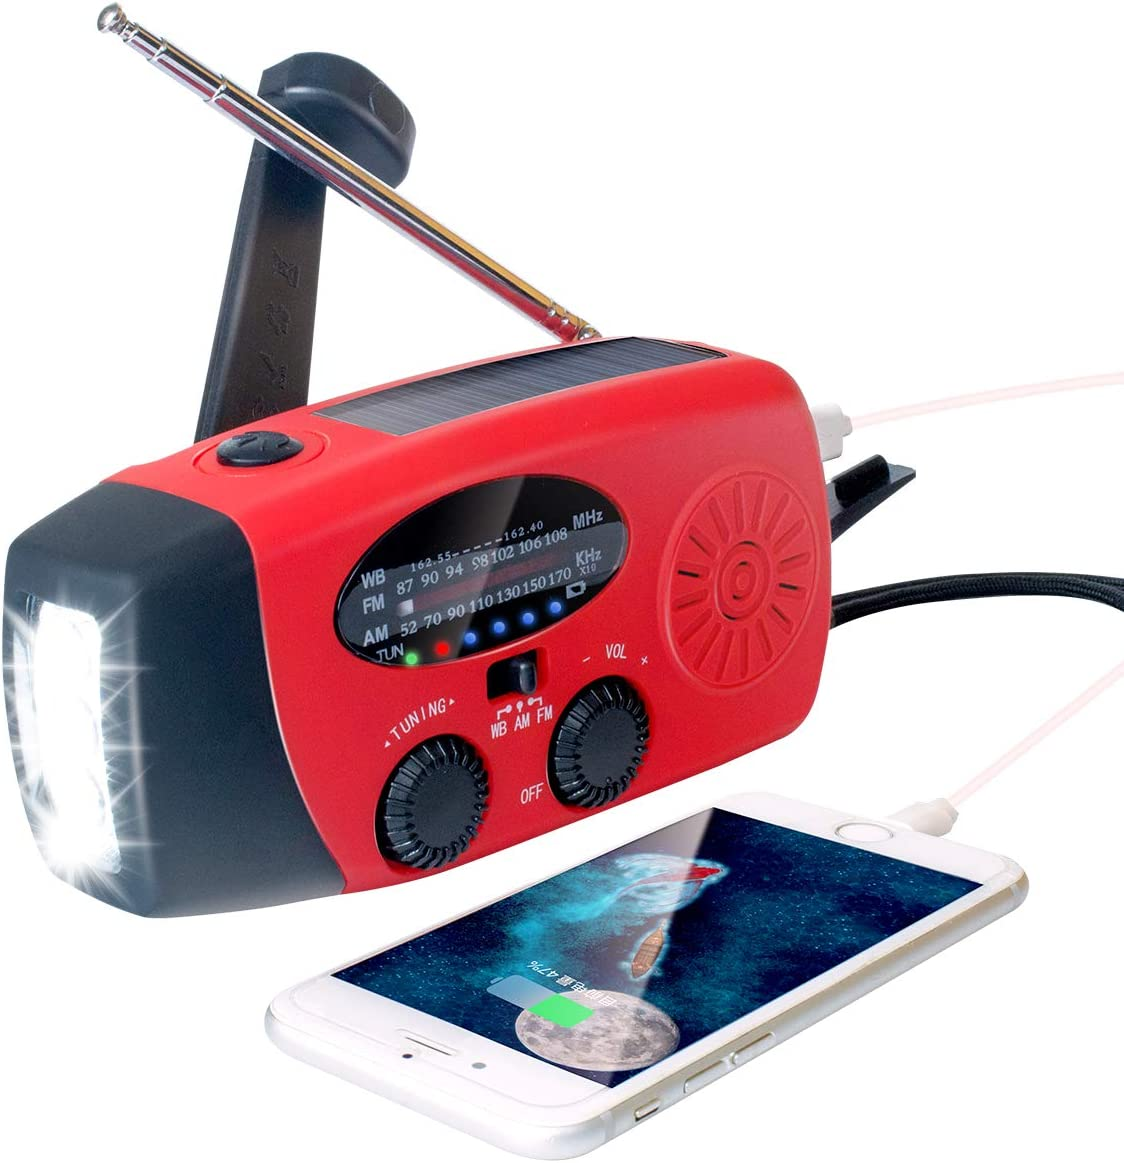 2021 Upgraded Emergency Solar Hand Crank Radio with LED Flashlight, Portable Am Fm NOAA Weather Radio, 2000mAh Solar Power Bank Cell Phone Charger for Home and Outdoor(Red)